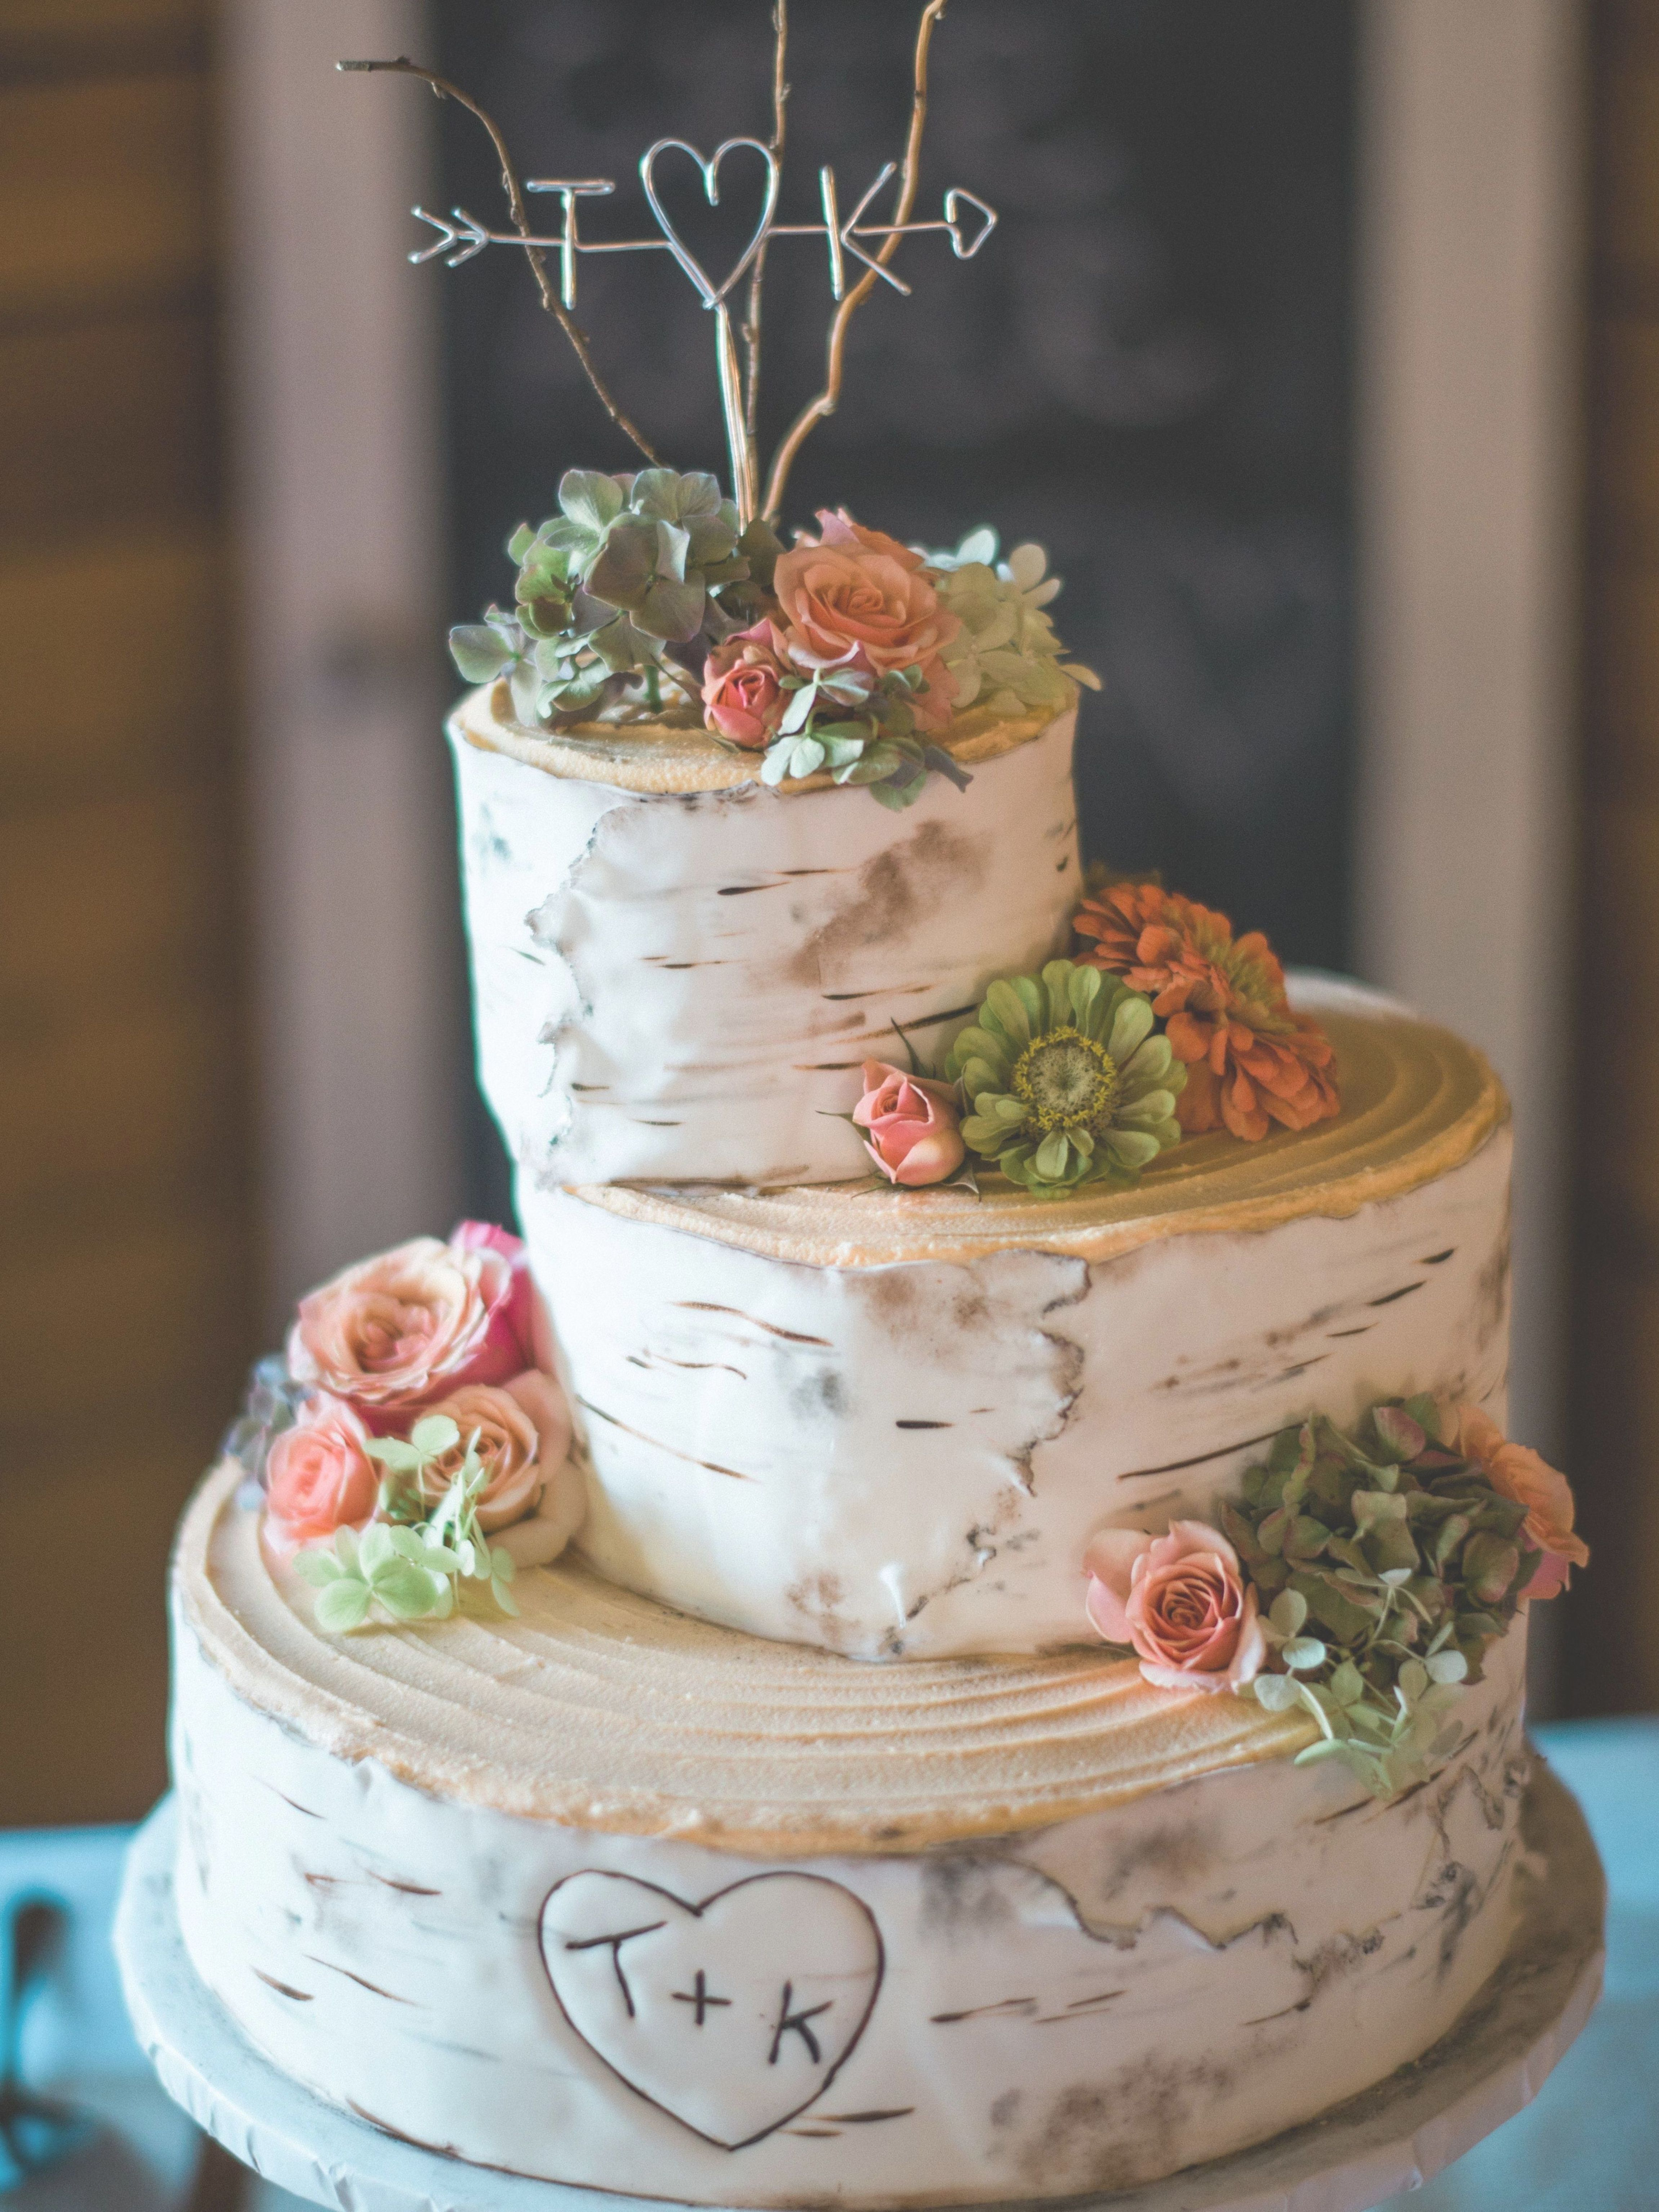 Wedding Event Cakes Can Go From The Most Basic To The Most Complex